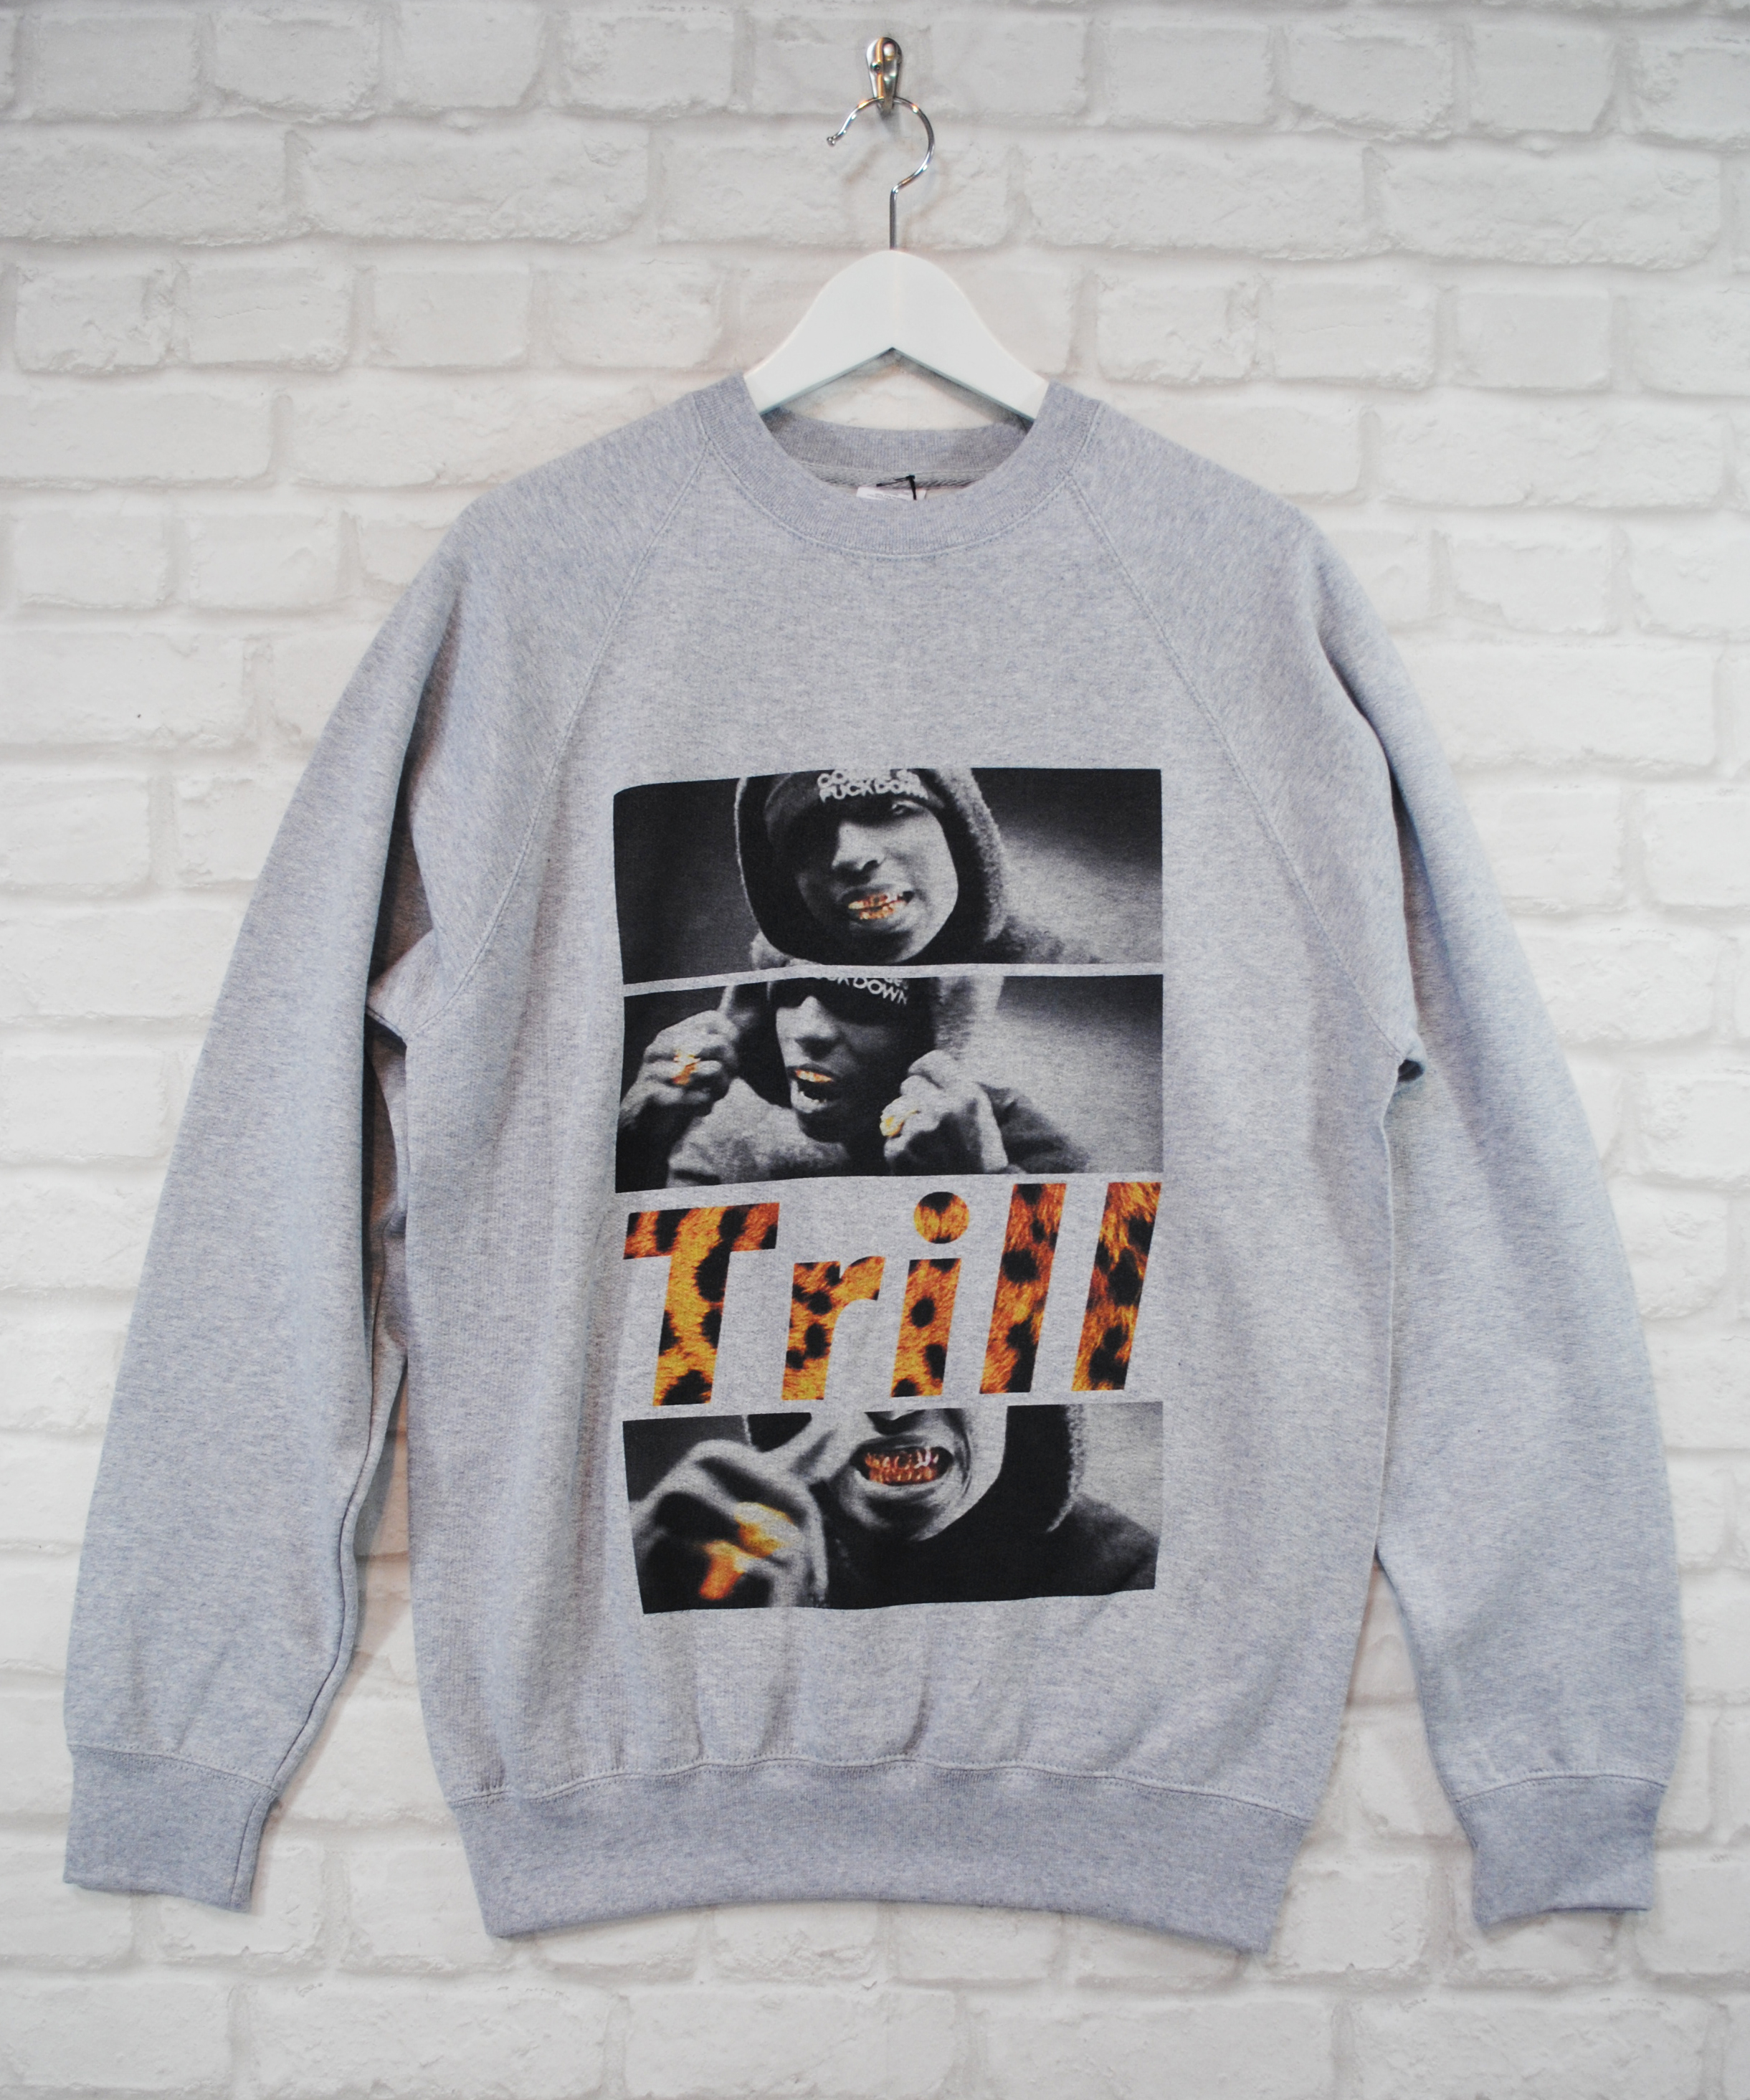 Be Unique. Shop asap rocky crewneck sweatshirts created by independent artists from around the globe. We print the highest quality asap rocky crewneck sweatshirts on the internet.